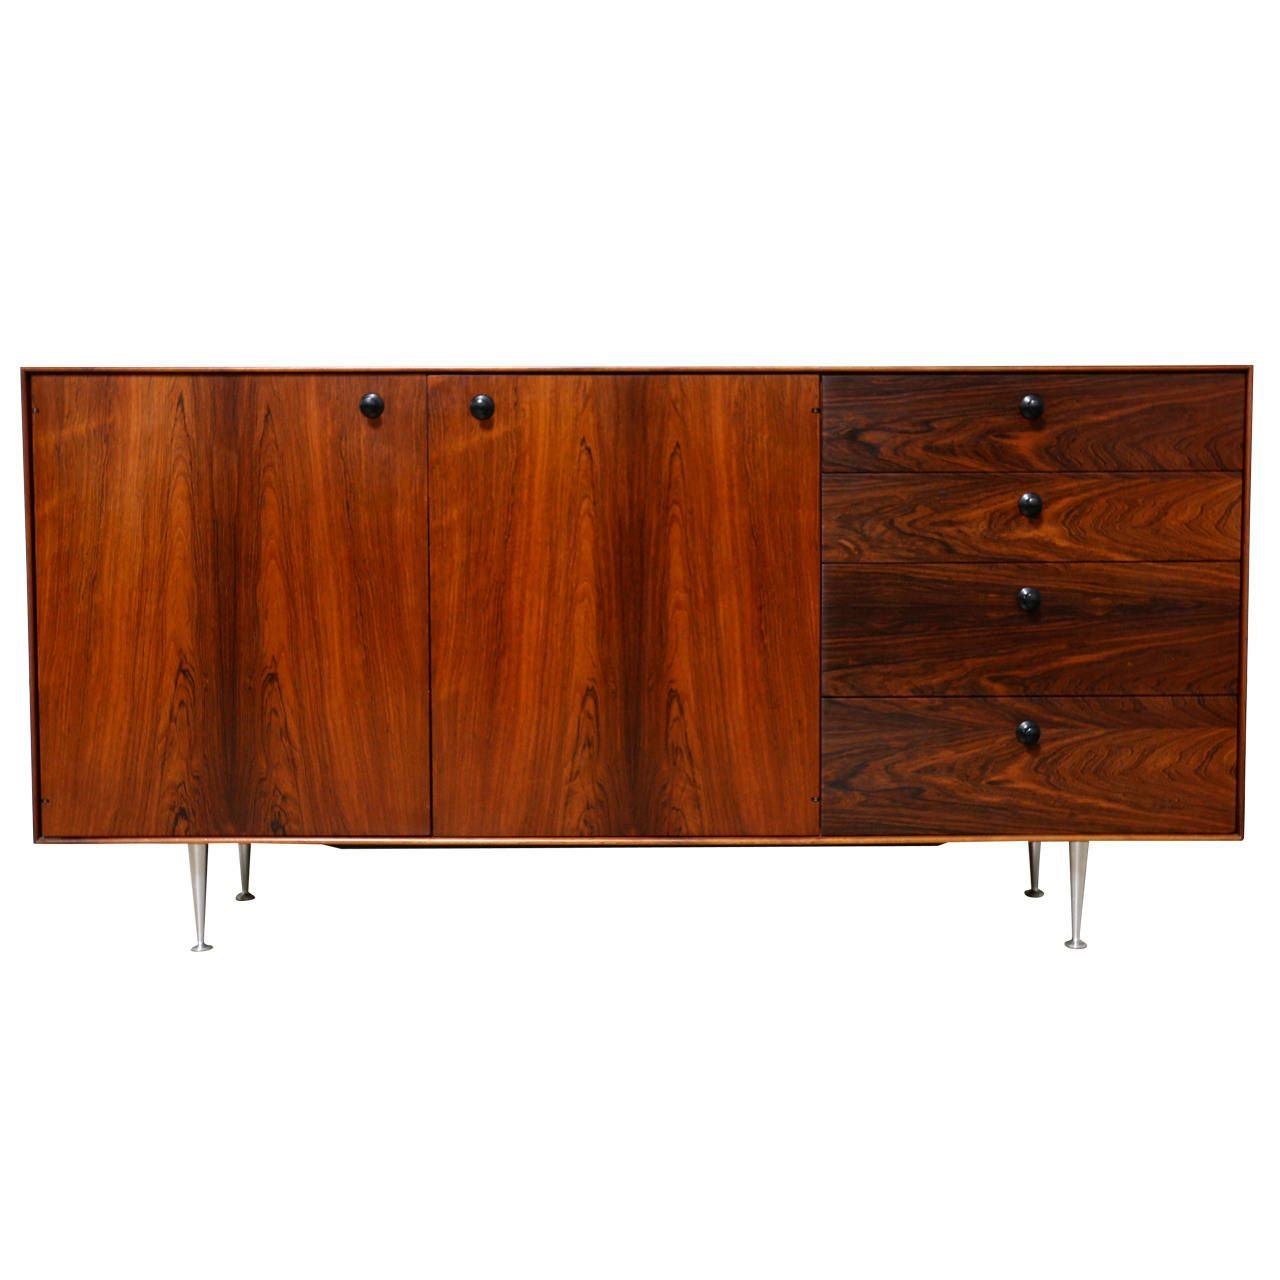 Rosewood Thin Edge Credenza By George Nelson For Herman Miller  # Muebles George Nelson